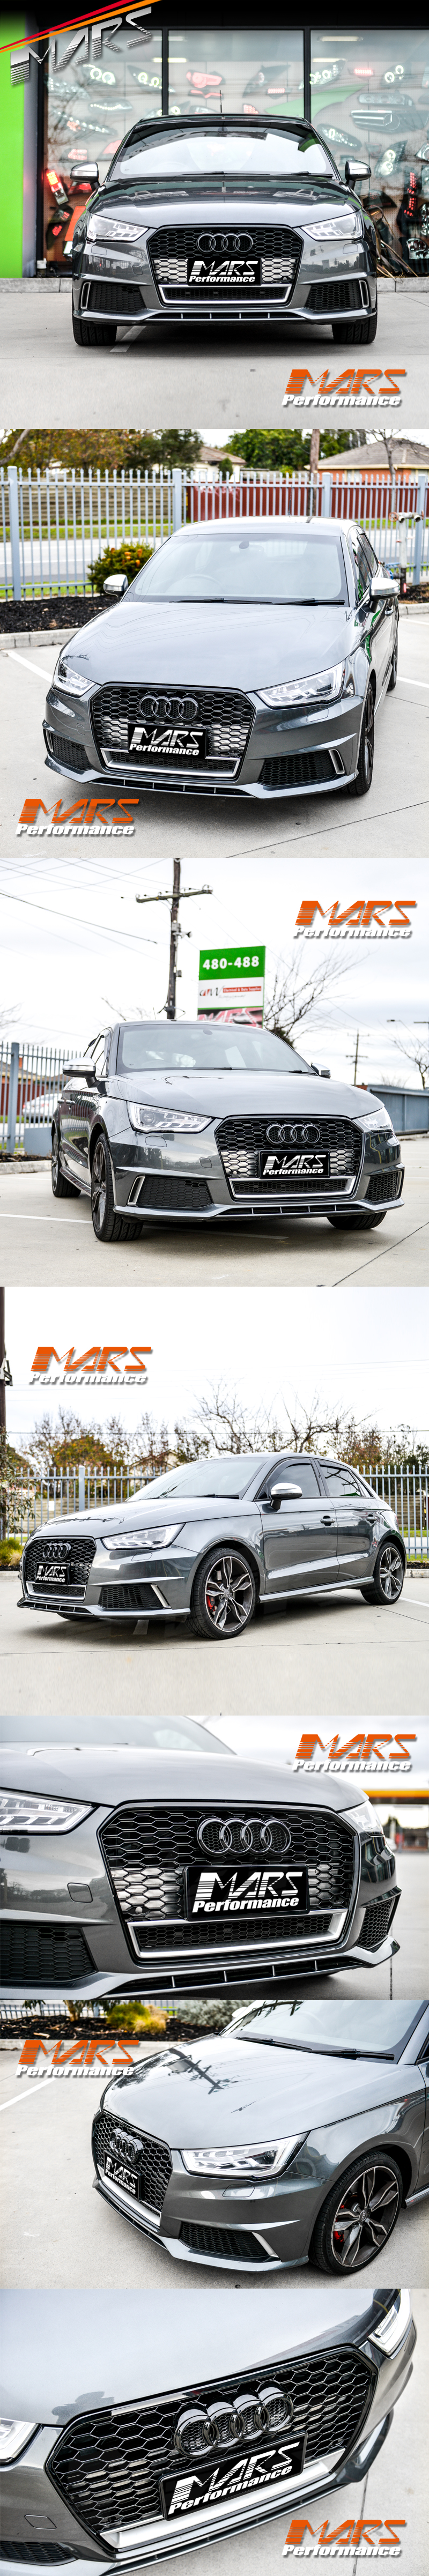 Details About Gloss Black Rs1 Honeycomb Style Bumper Bar Grille Grill For Audi A1 8x 15 18